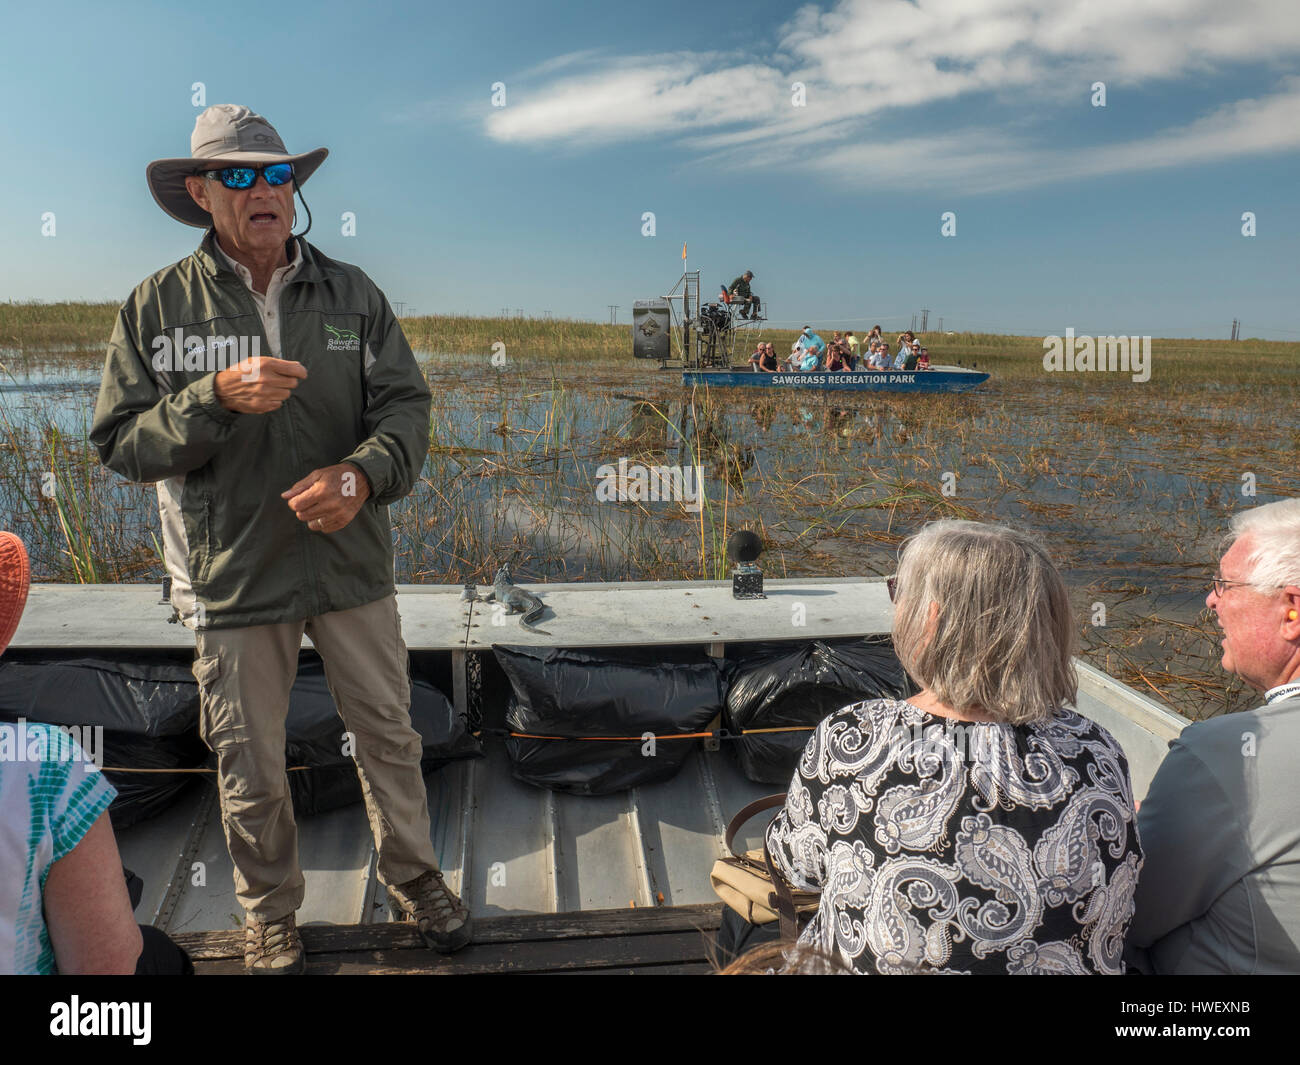 Tourist Enjoy An Airboat Ride At Sawgrass Recreation Park Hoping To See Wild Florida Everglades Alligators - Stock Image